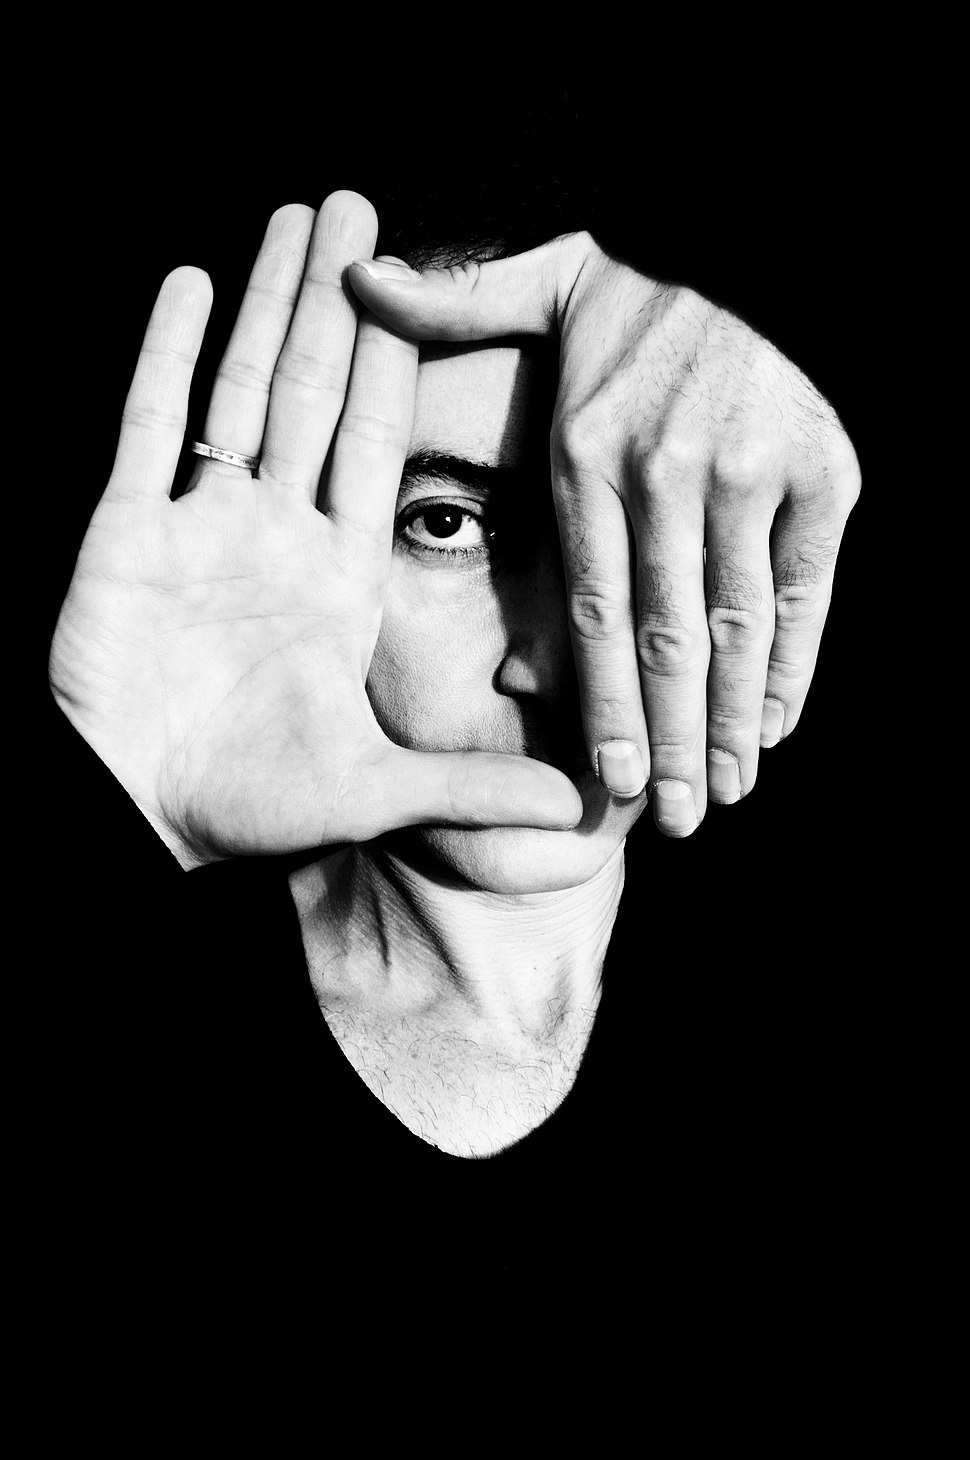 Hands Dubfire Photo